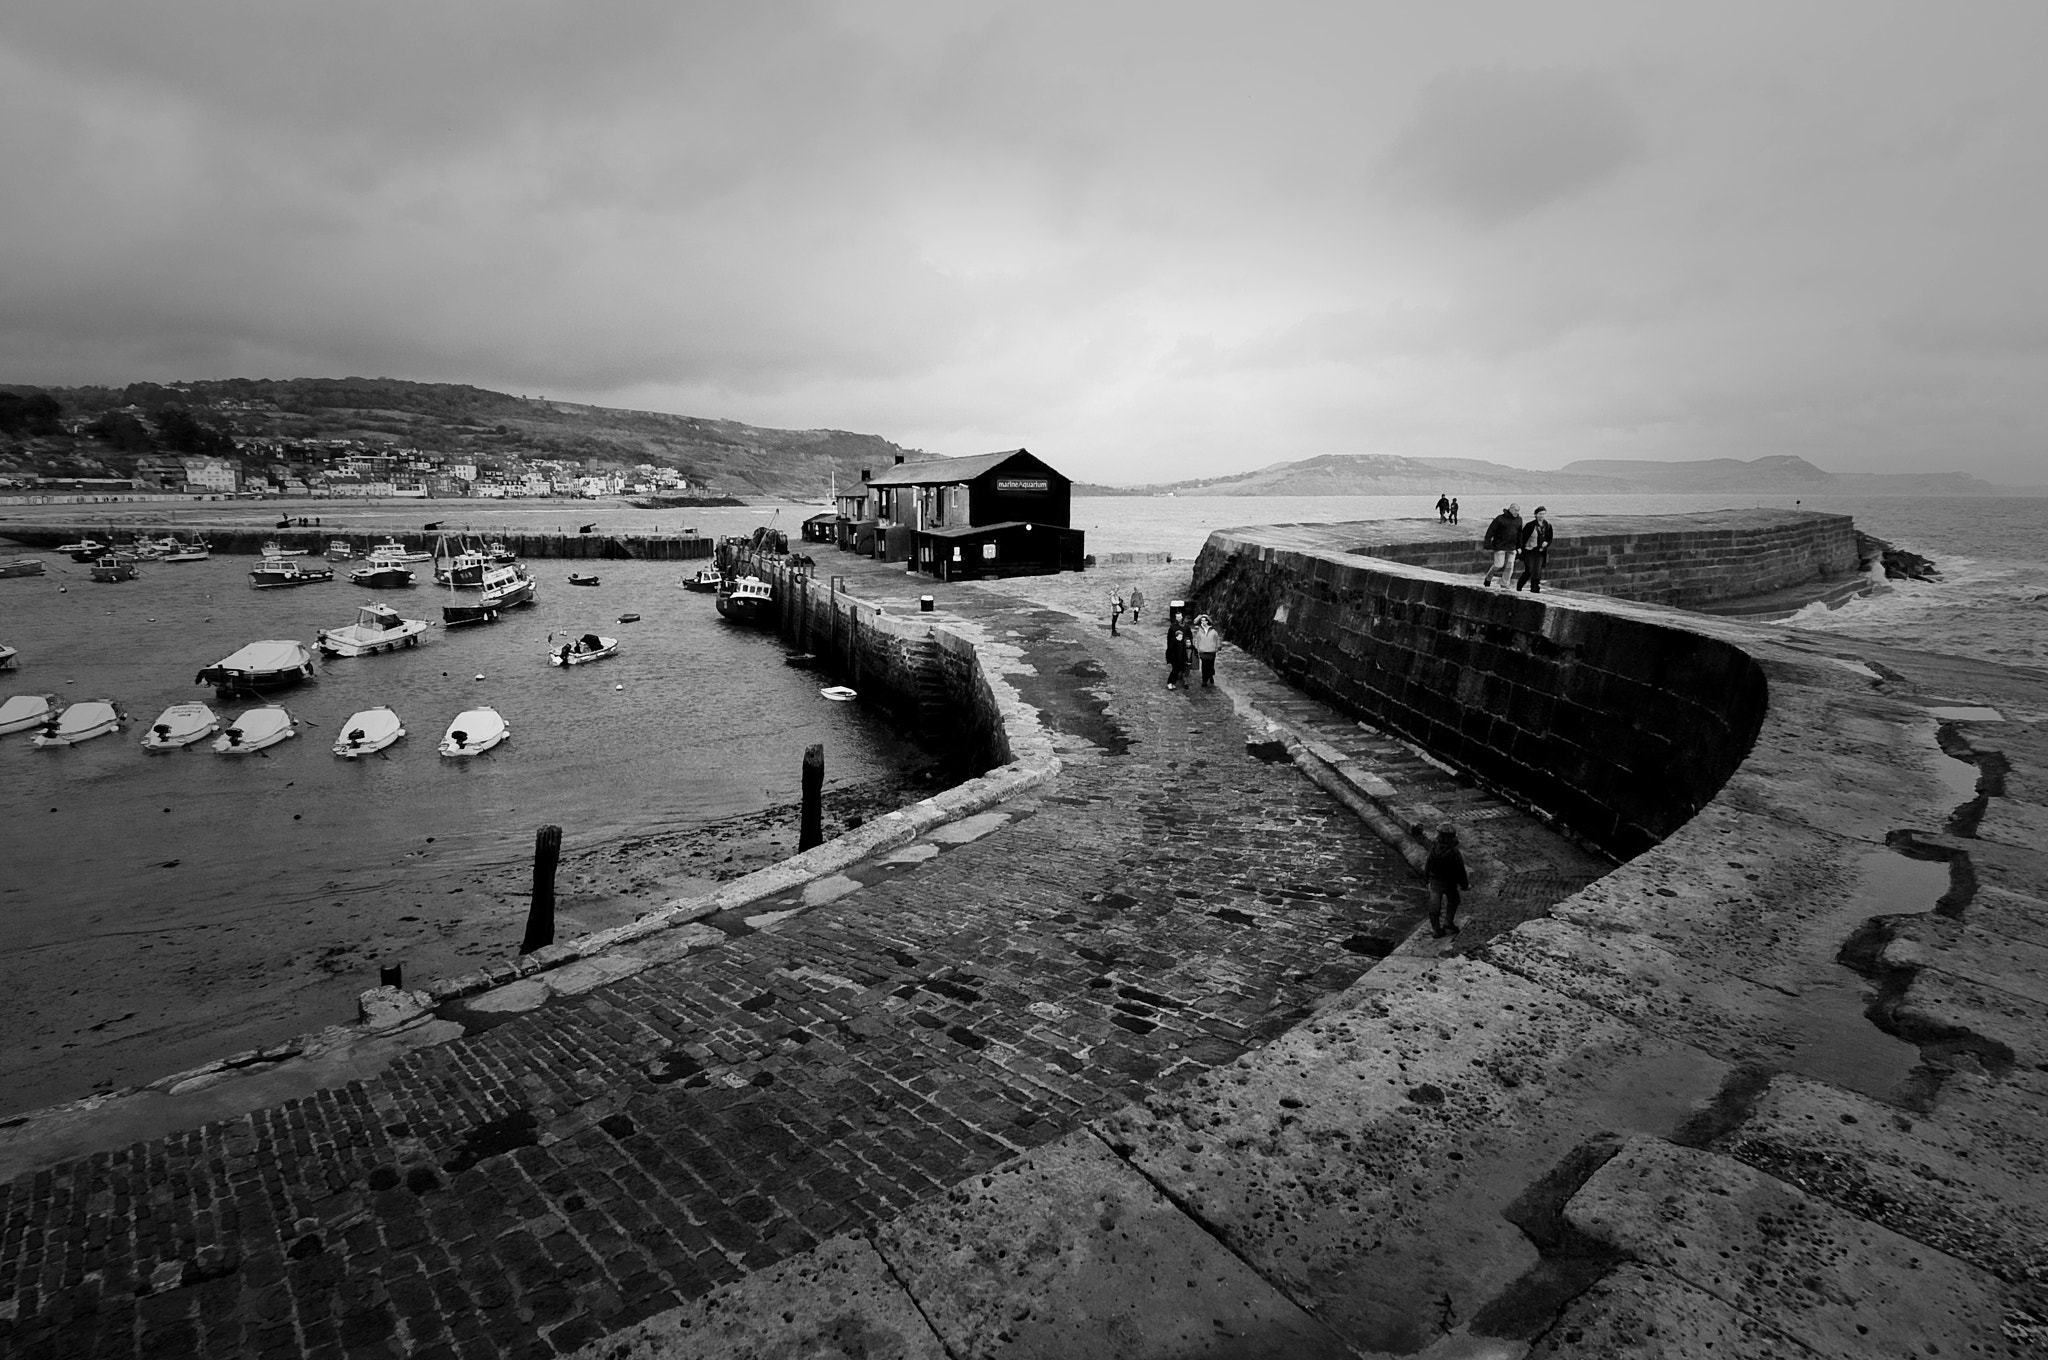 Photograph The Cobb, Lyme Regis by Neil Bryars on 500px